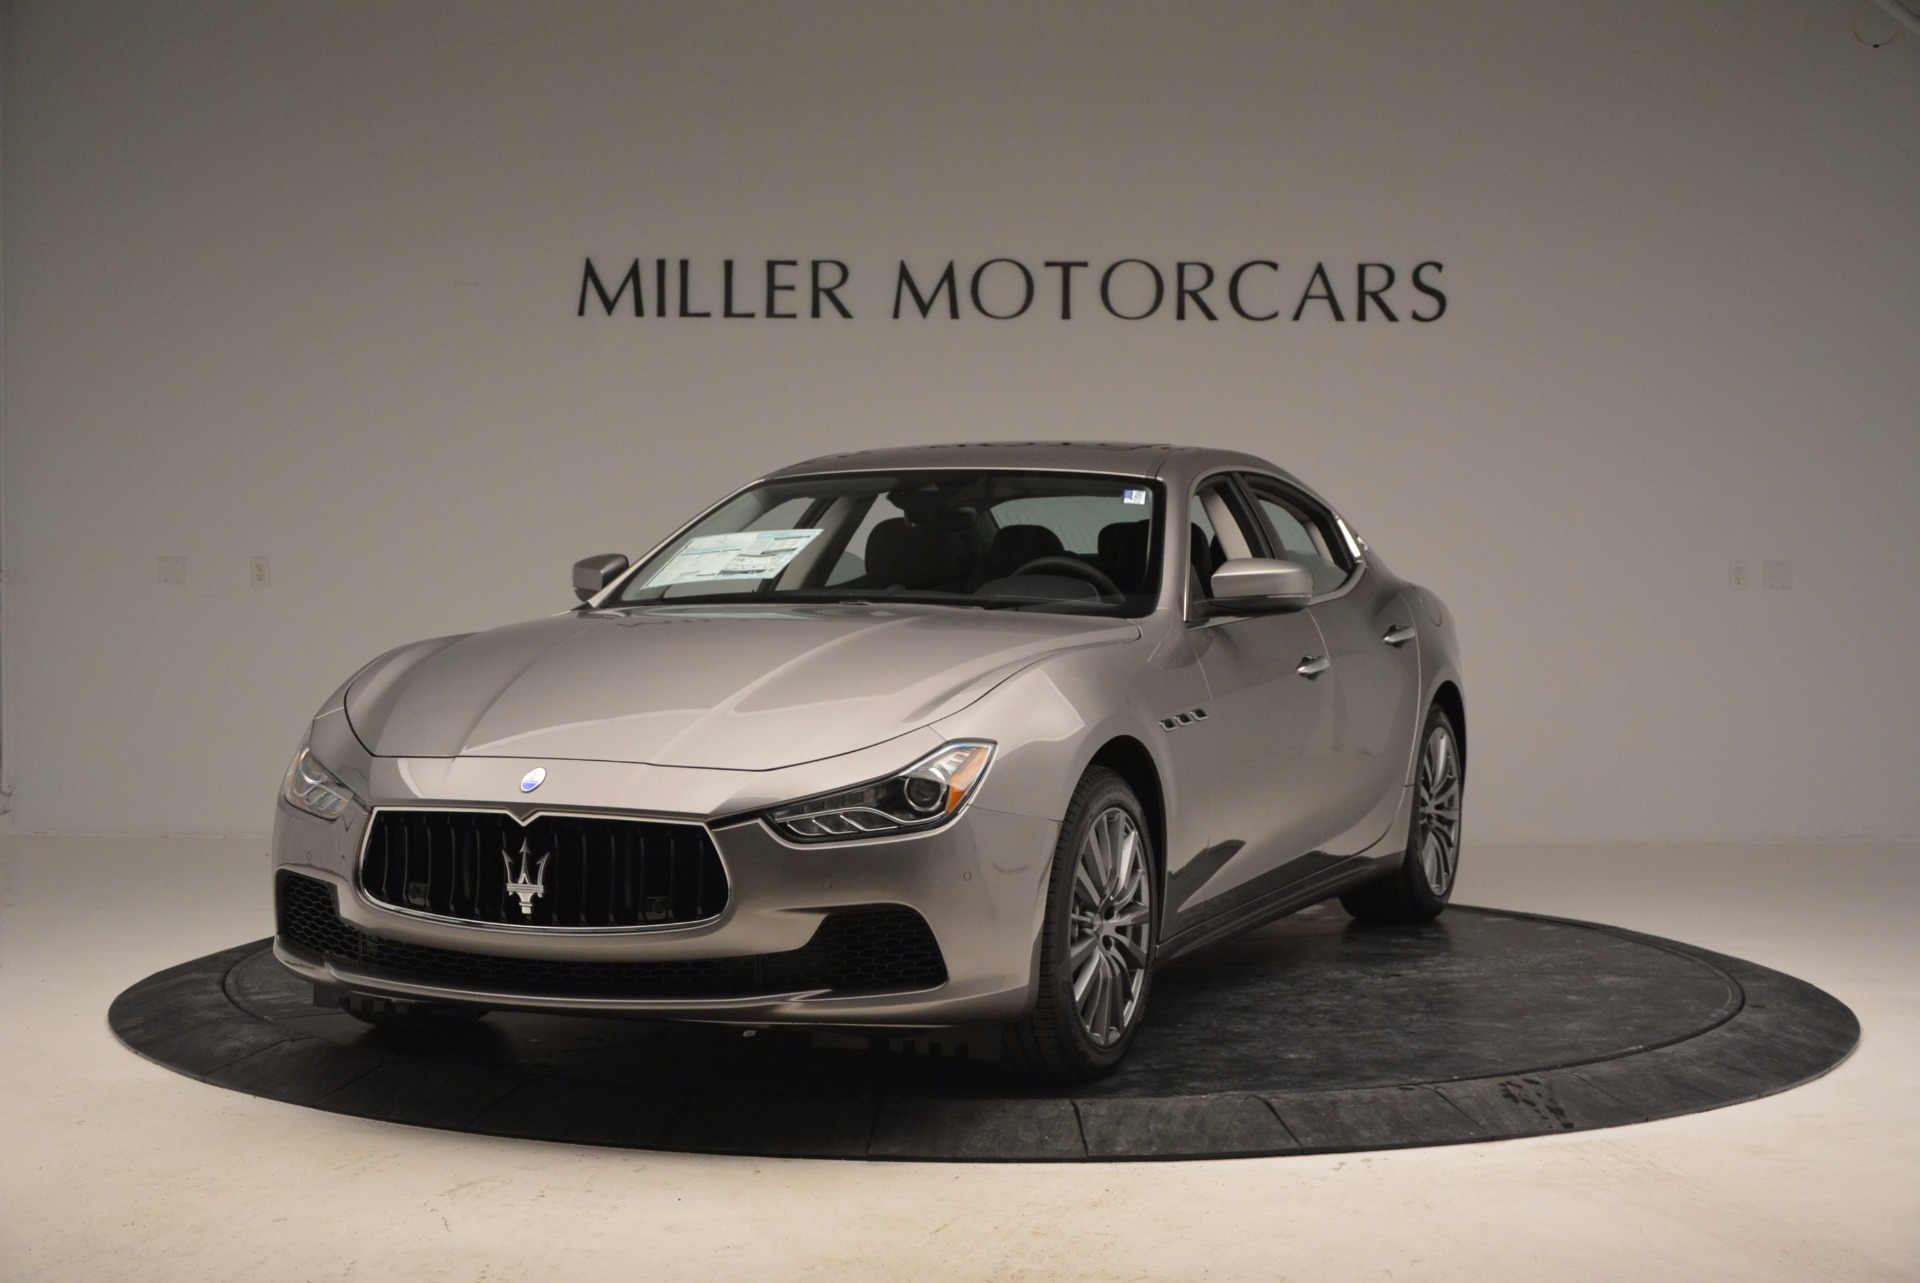 New 2017 Maserati Ghibli S Q4 For Sale In Greenwich, CT 872_main